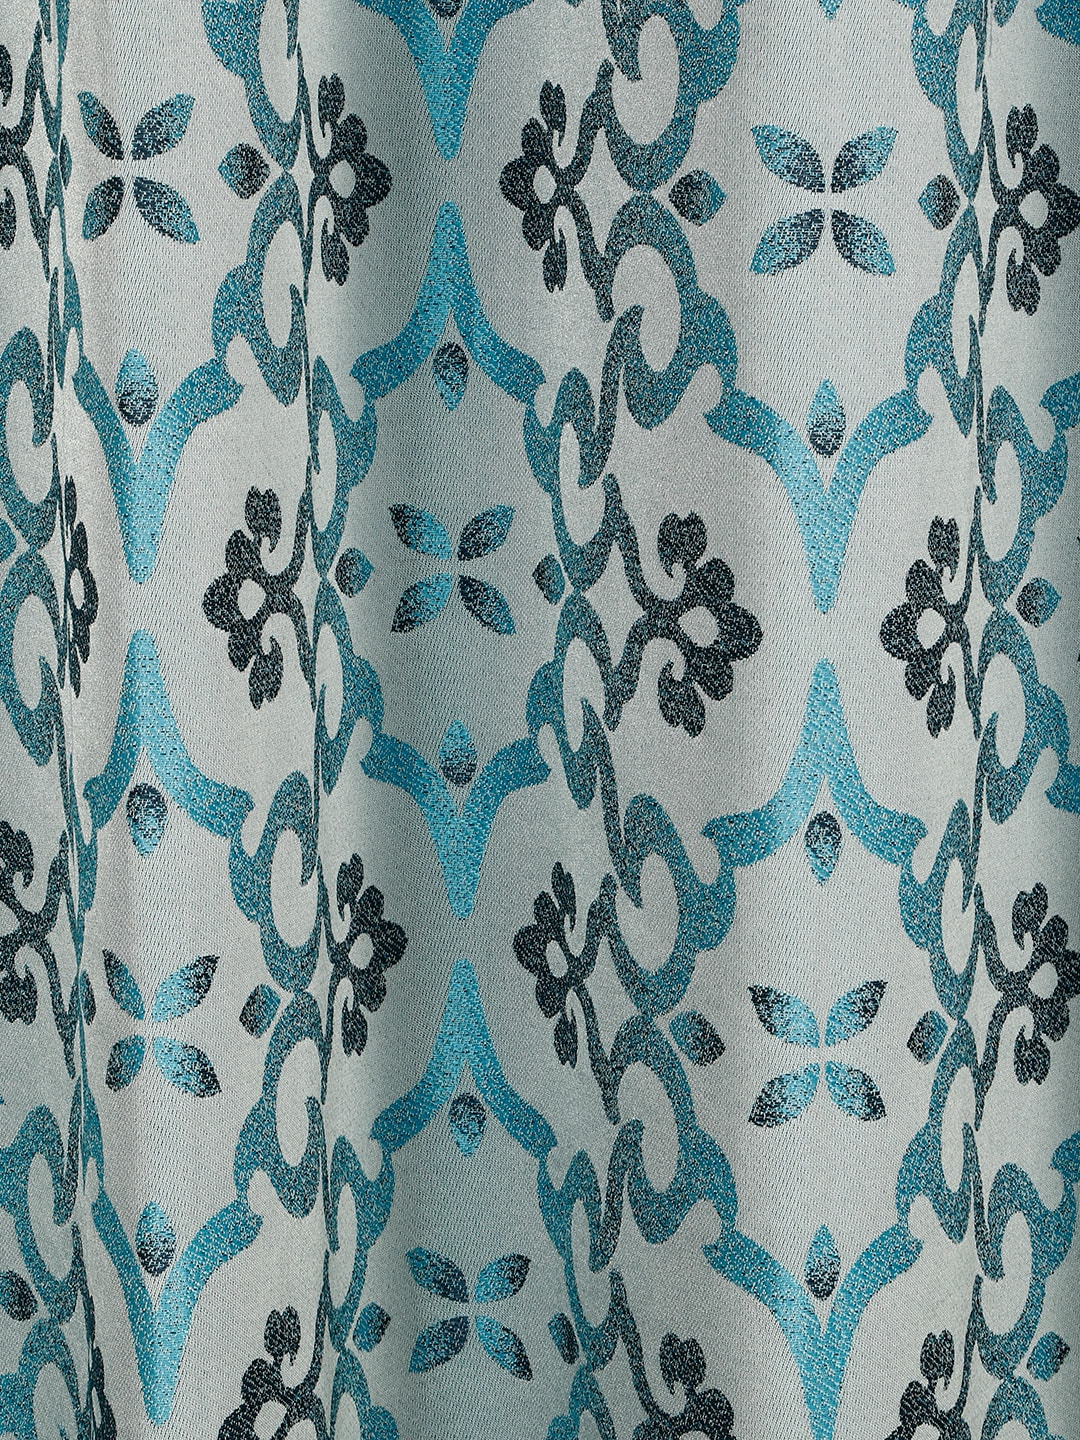 Long patterned curtains - Long Patterned Curtains Long Patterned Curtains 33